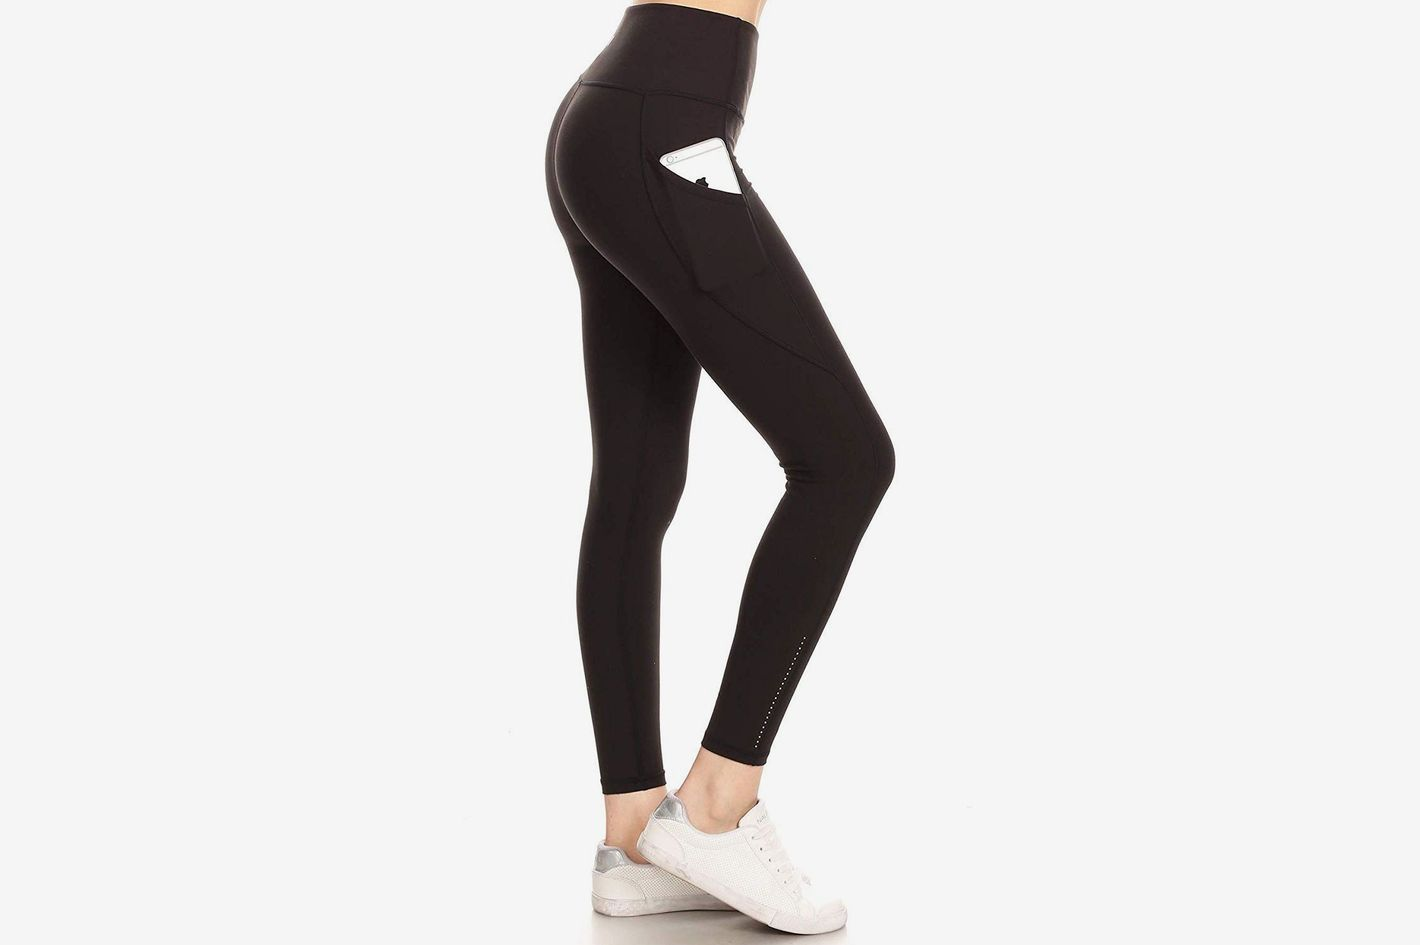 bff1866e Leggings Depot High Waisted Leggings